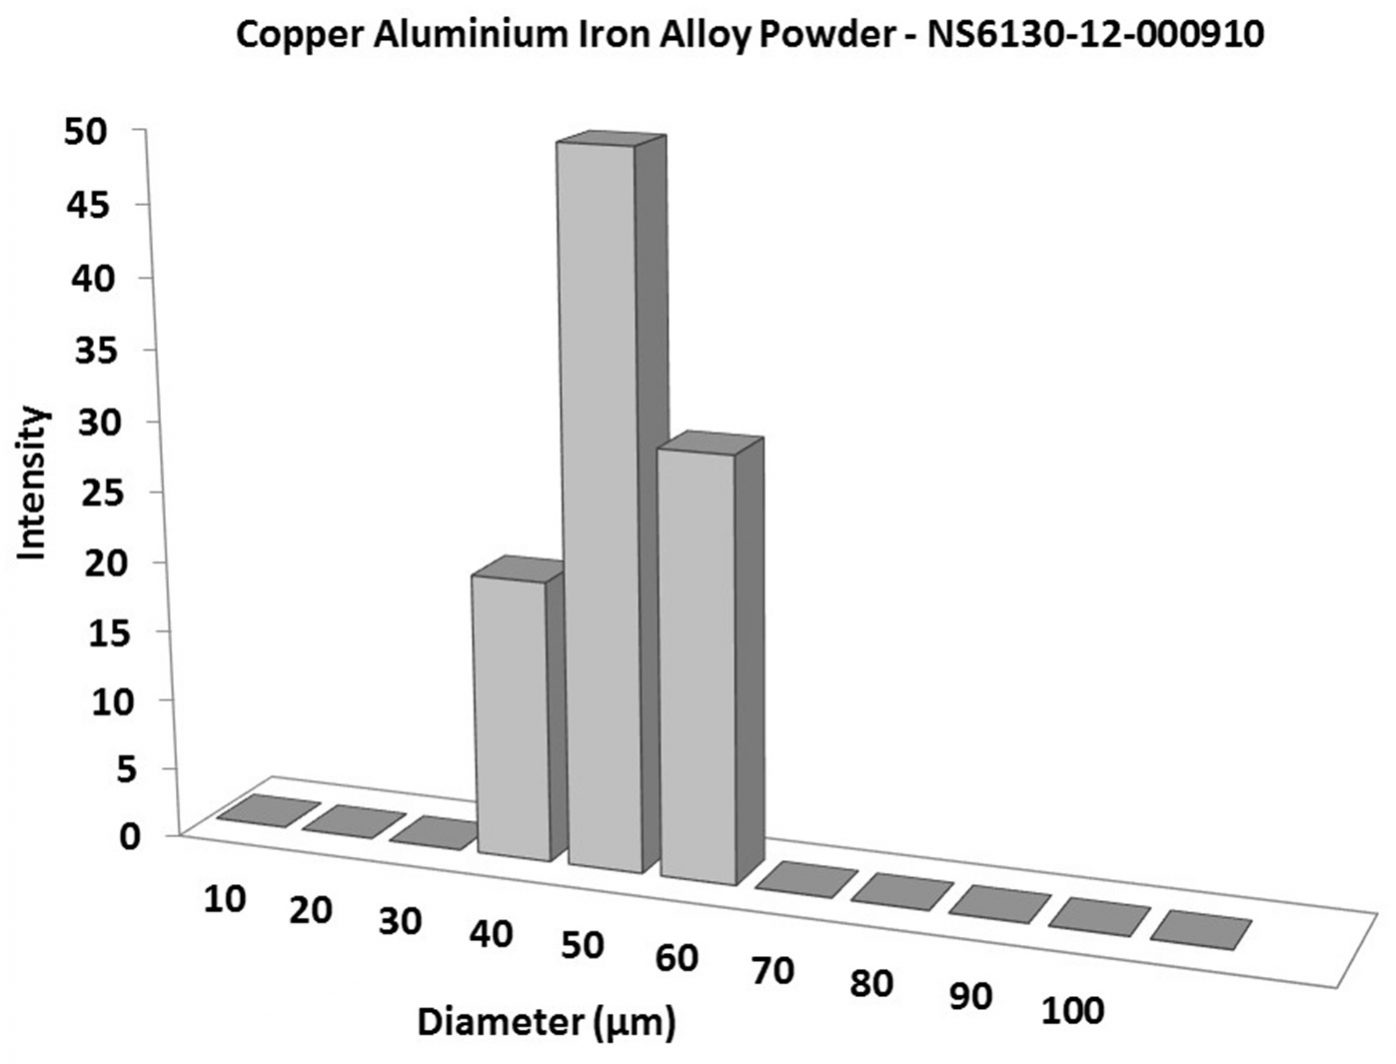 Particles Size Analysis – Copper Aluminium Iron Alloy